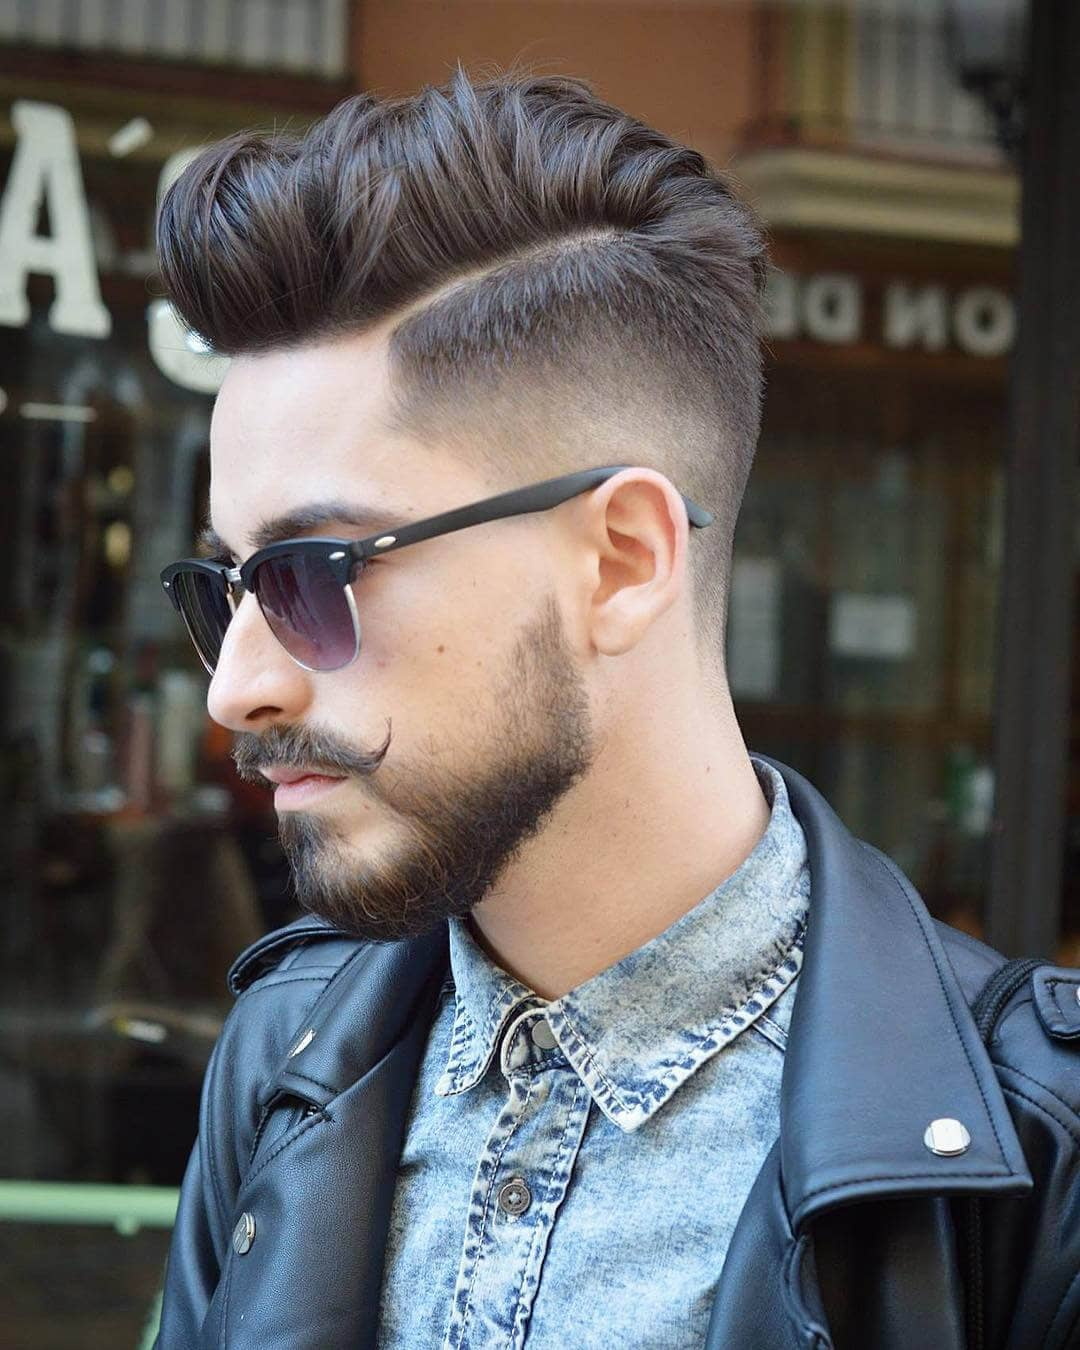 Best undercut hairstyles for men 2